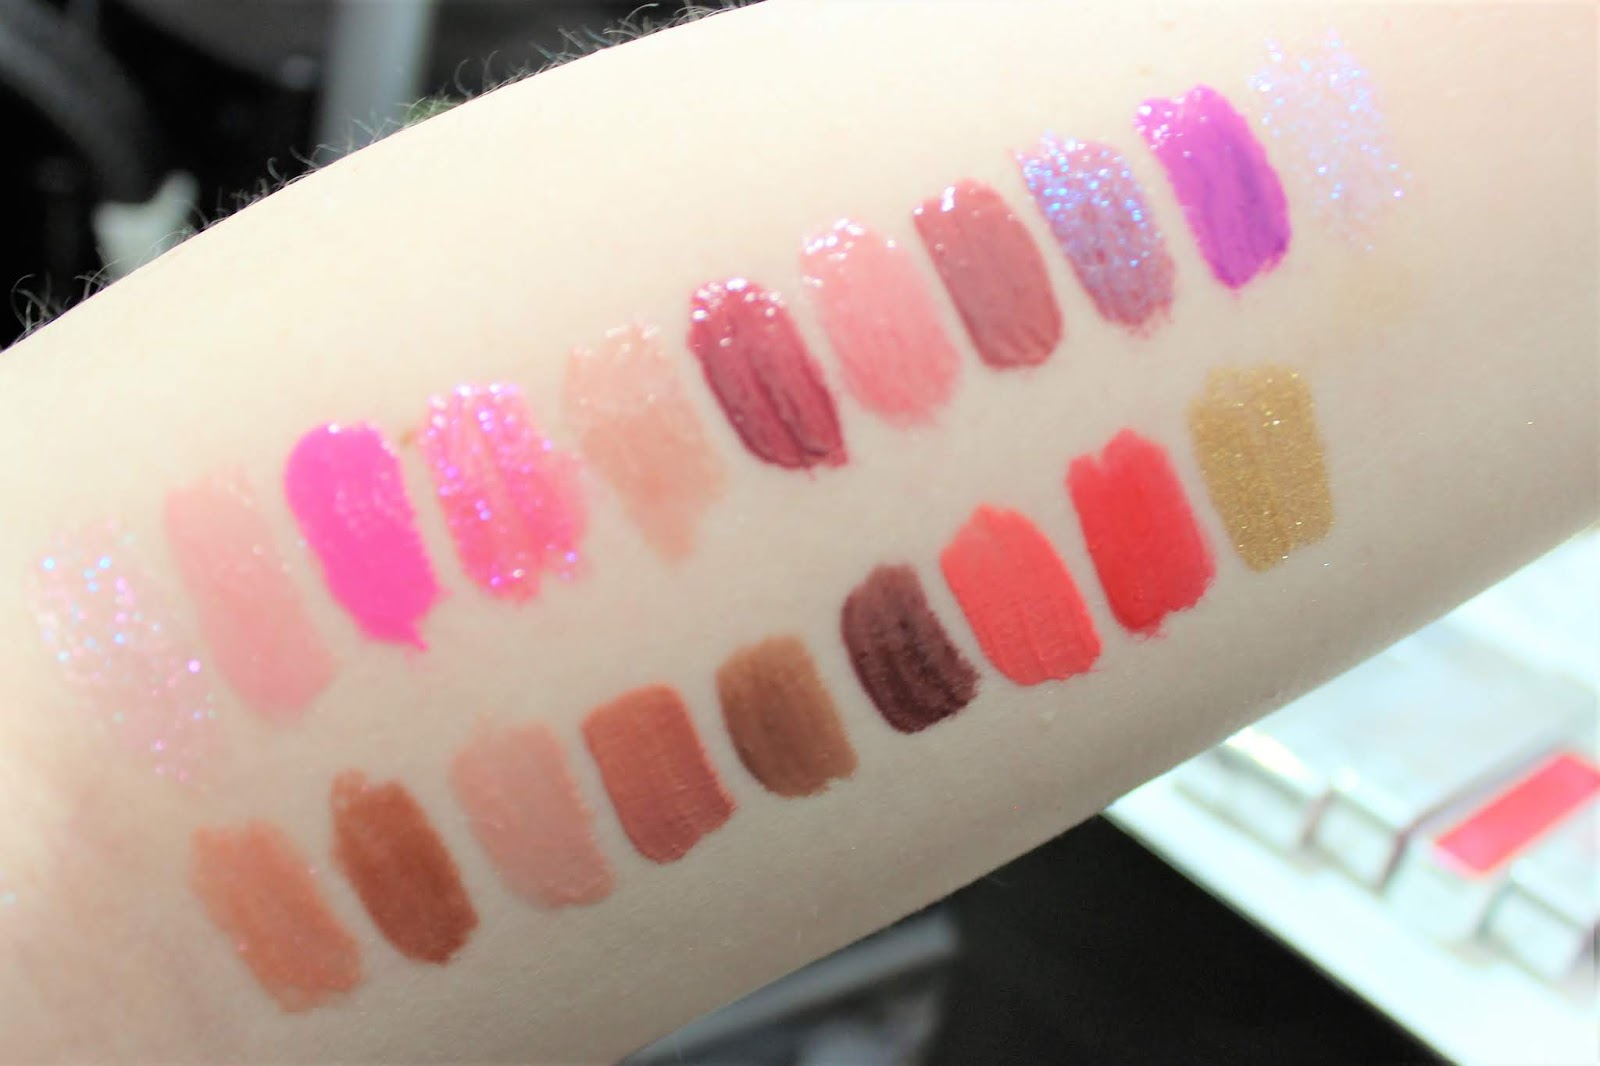 Urban Decay Hi-Fi Shine Lip Gloss swatches